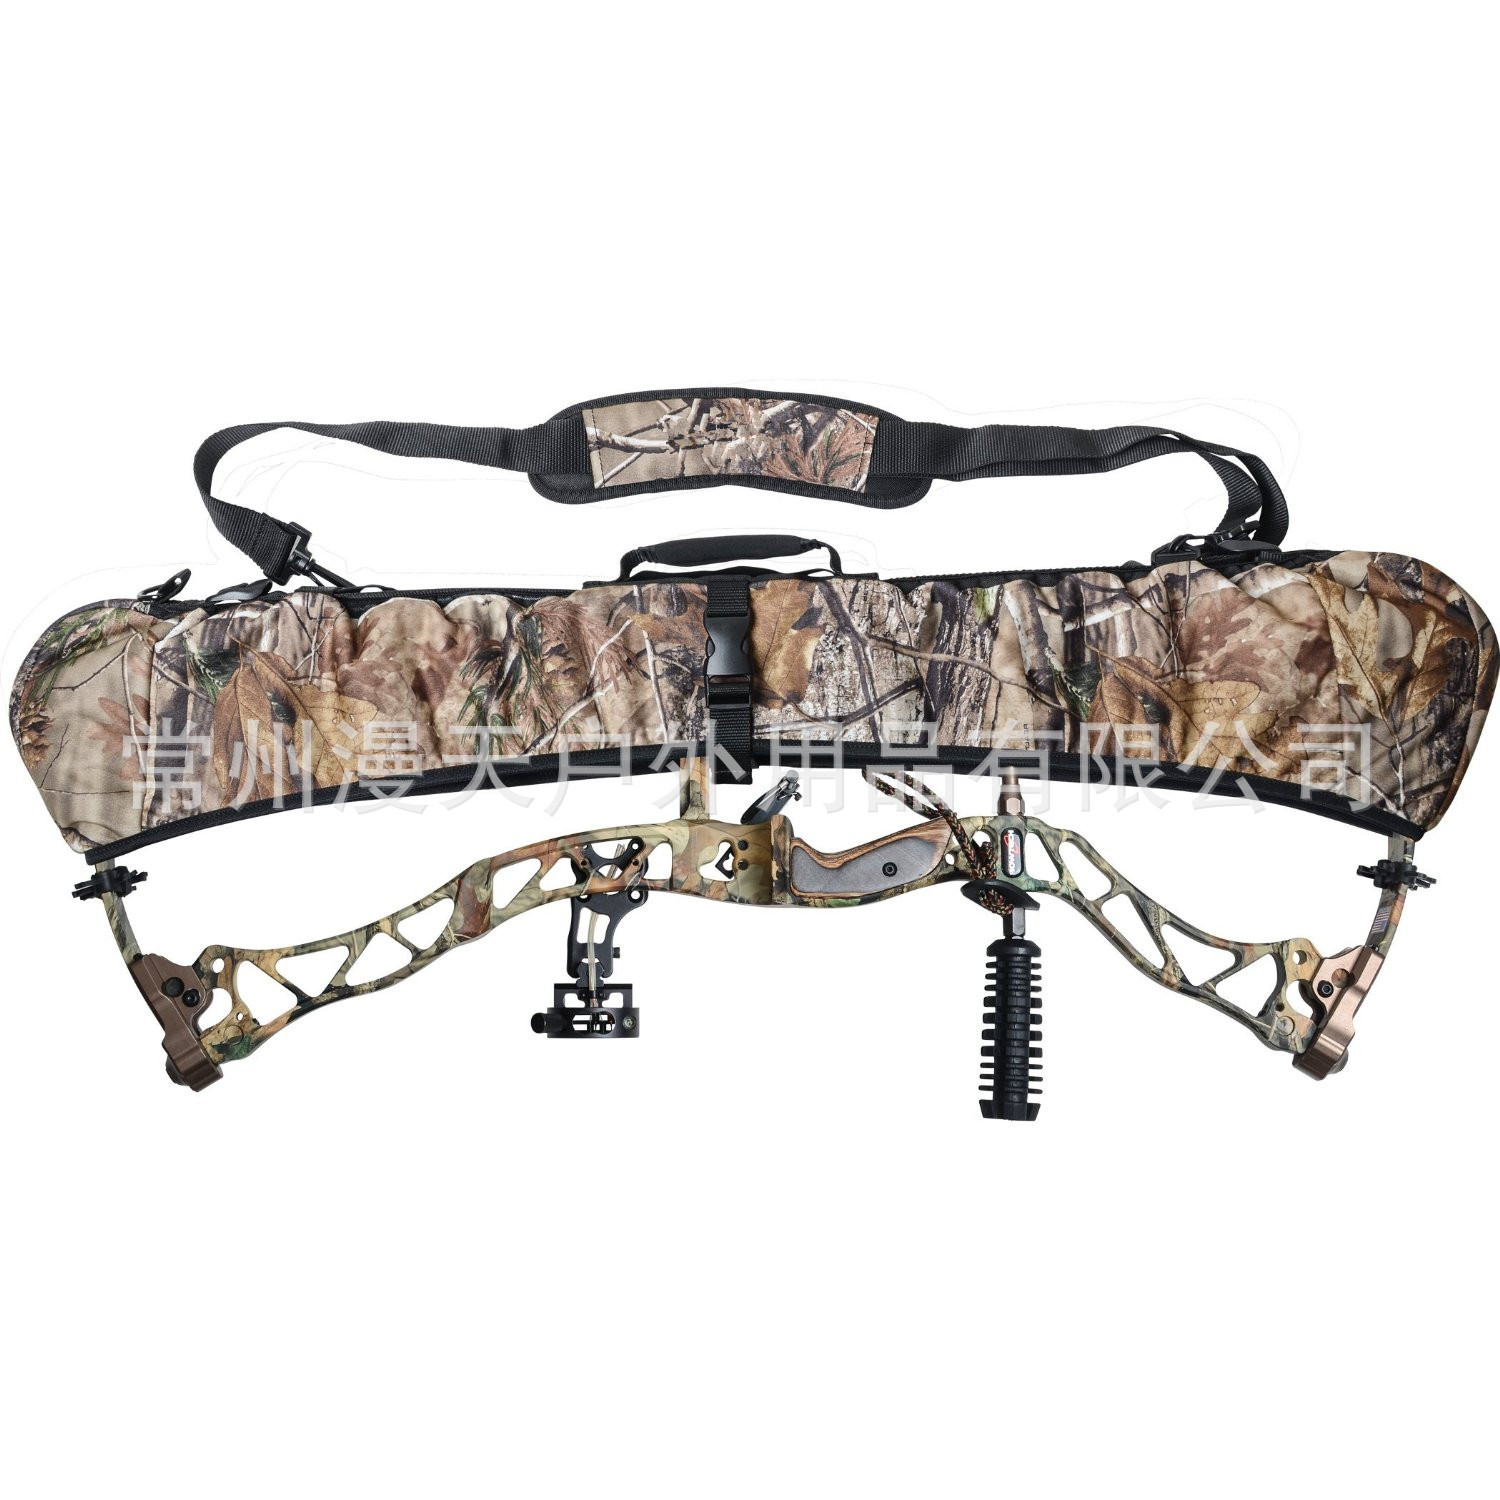 MYDAYS neoprene bow sling carrier Hunting Chasse Archery Bow Bag Case for Hog Deer Turkey Buffalo Hunting Accessories